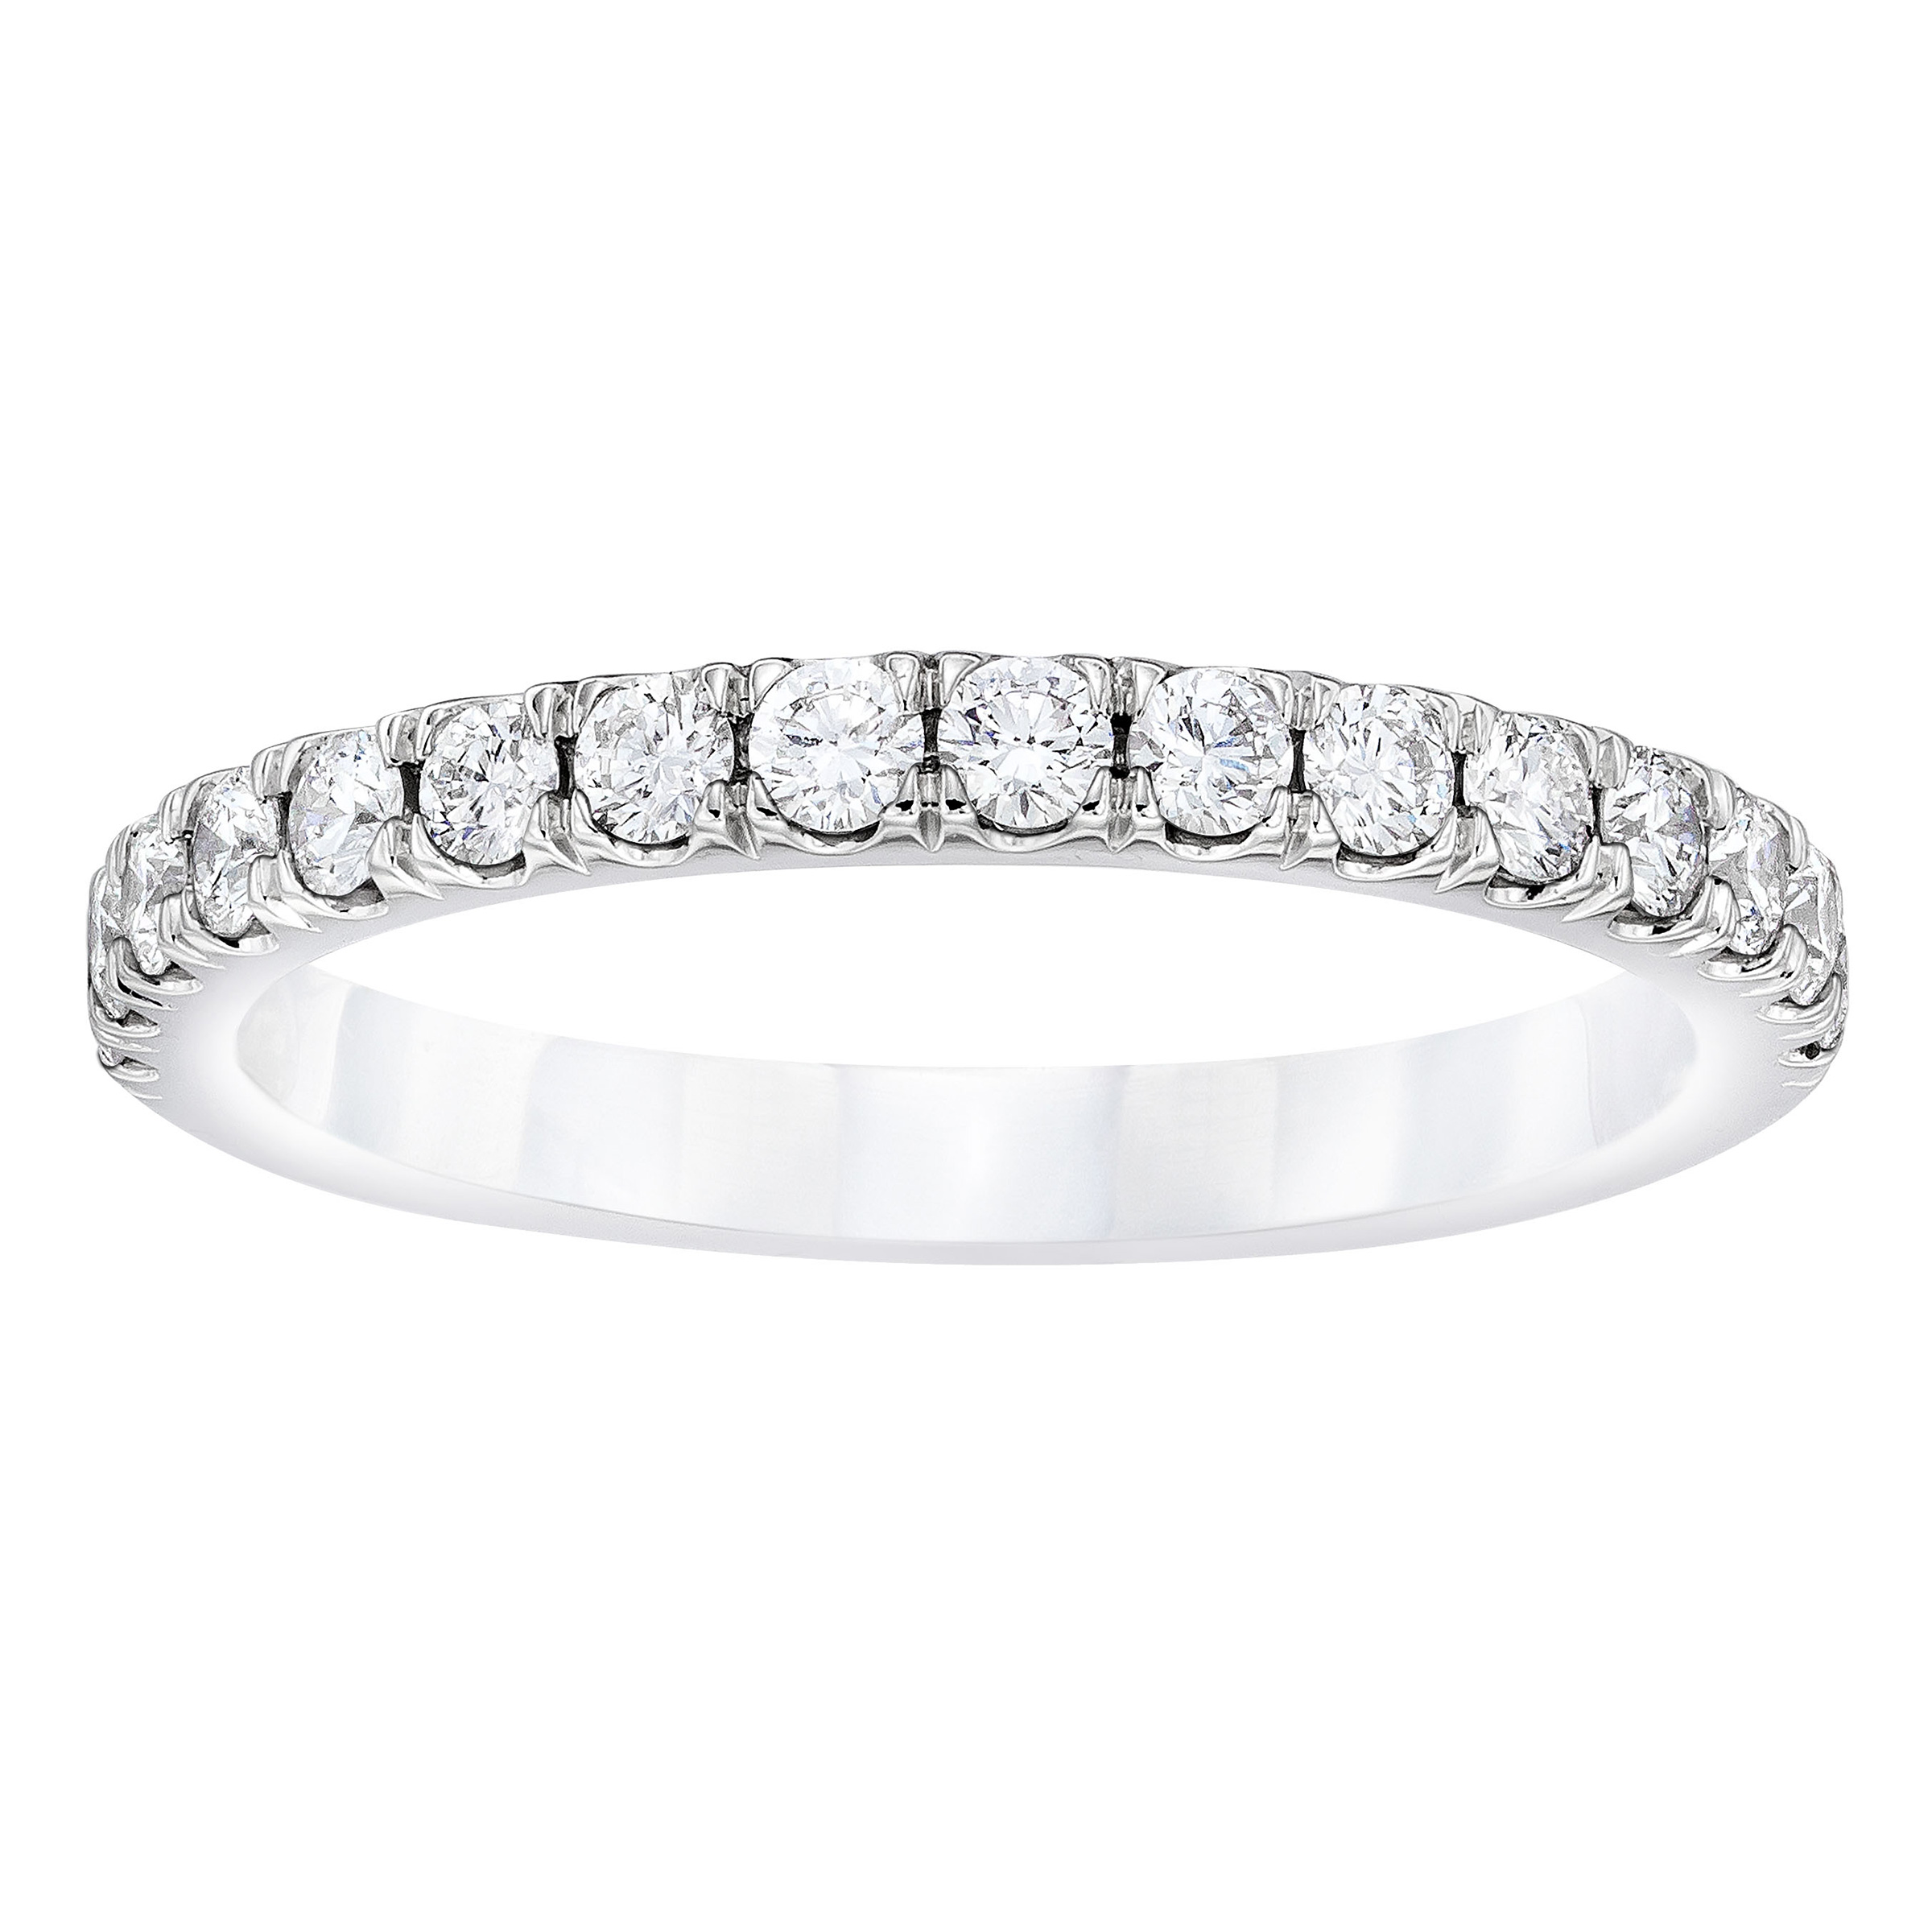 Four-Prong-Eternity-Ring